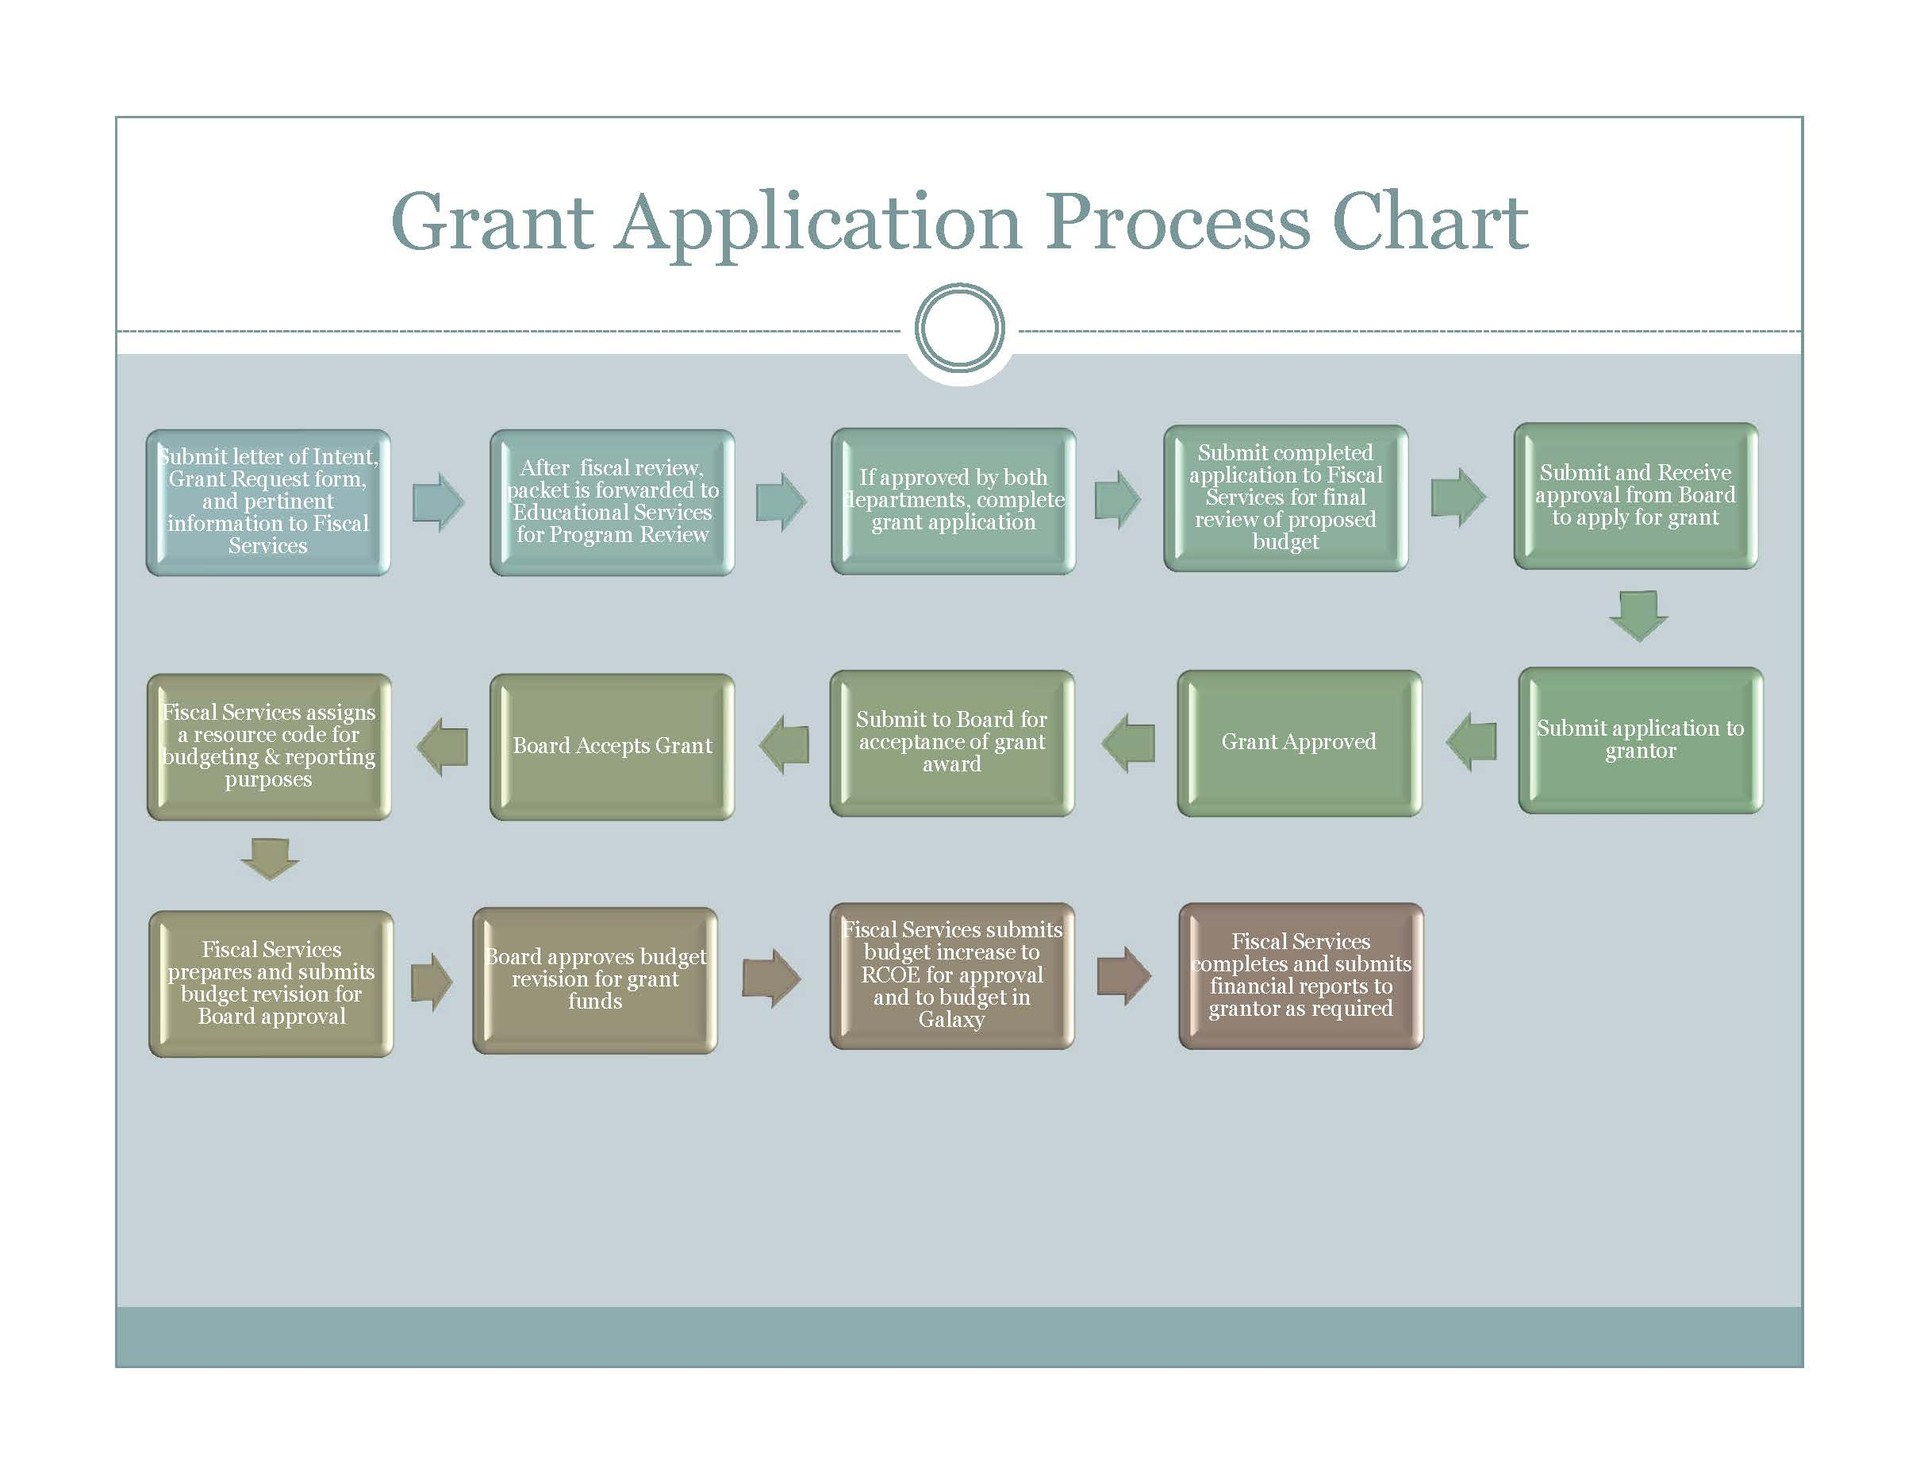 Grant Application Process Flow Chart